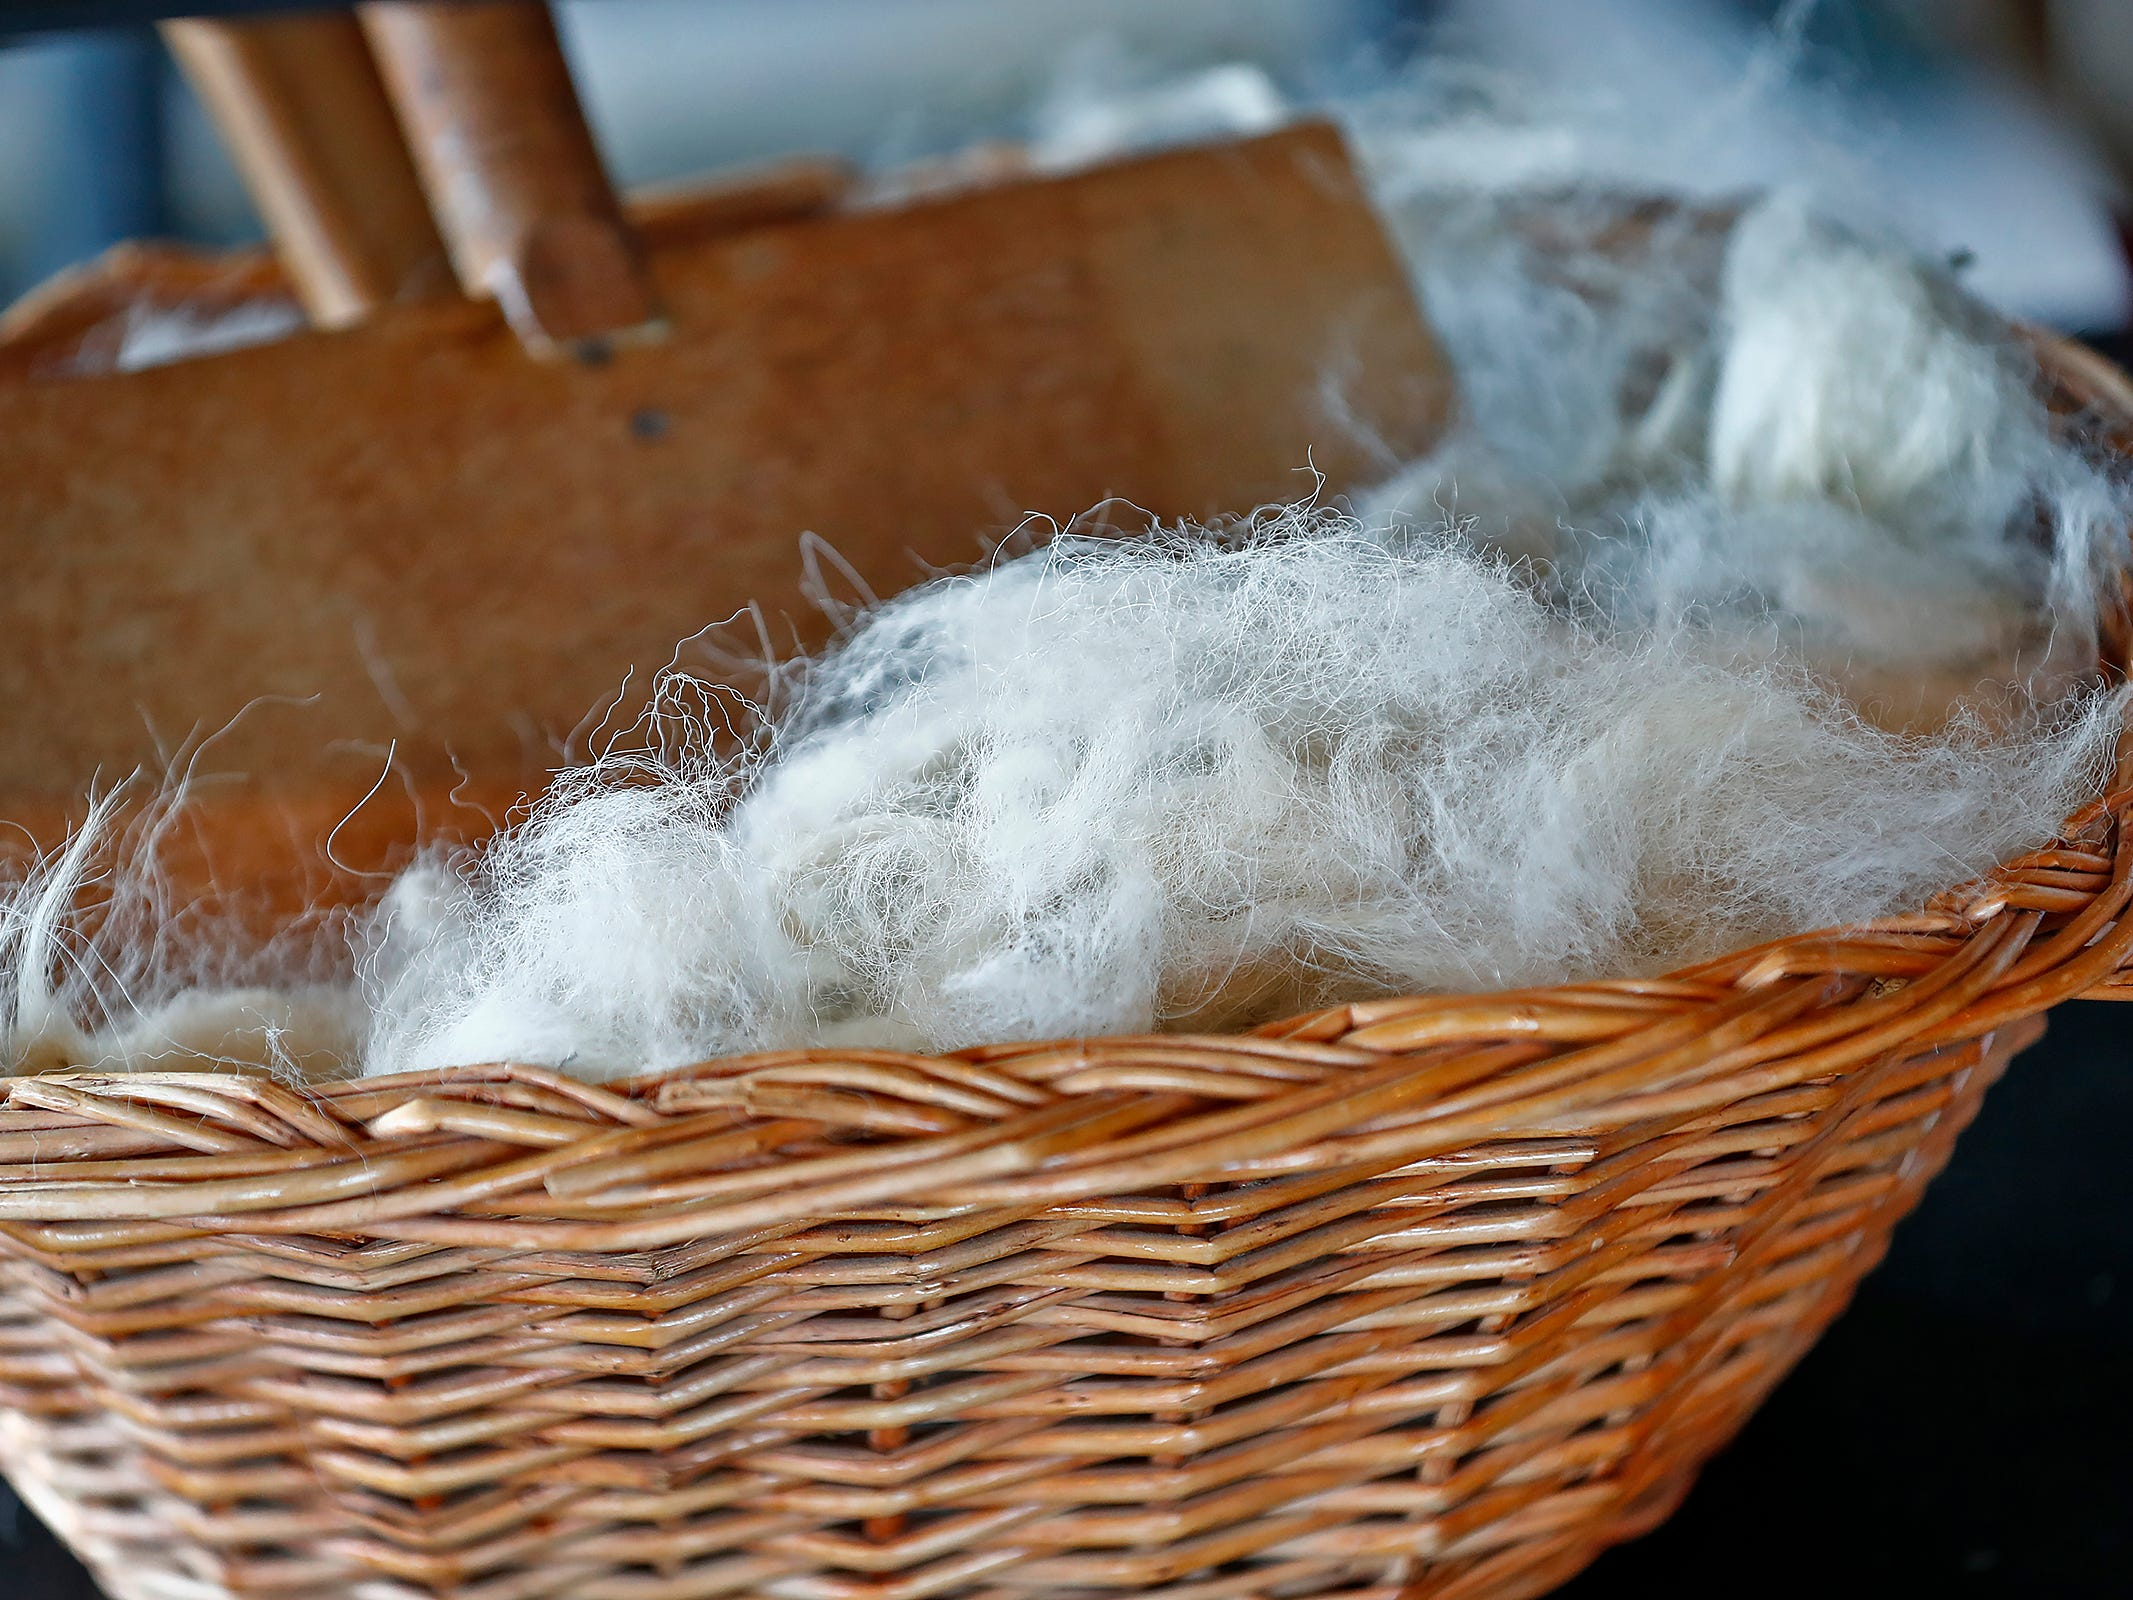 Unwashed sheep wool and carding combs are seen at ReCraft, Tuesday, Dec. 11, 2018.  Many of the store's items are donated or ready for re-use. ReCraft was born out of Bethany Daugherty's love of crafting and her interest in environmental activism.  At the secondhand craft and hobby store, Daugherty also teaches workshops.  Sustainability and environmentalism are the focus of the store.